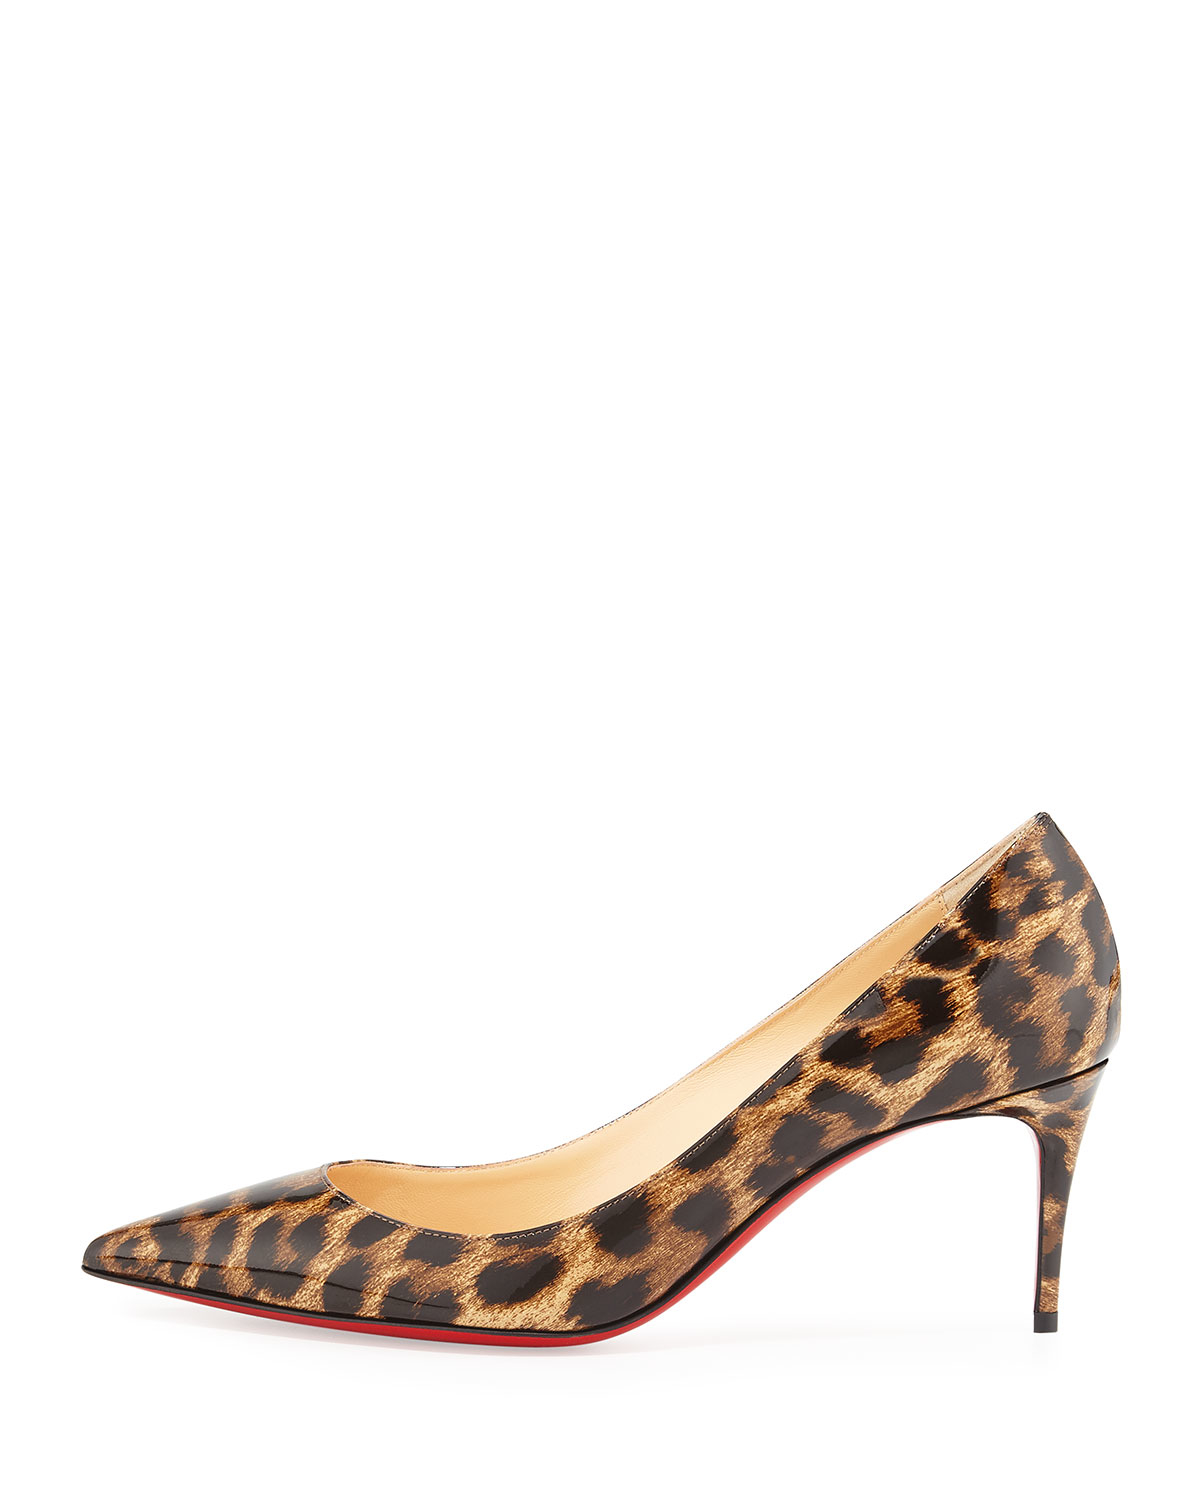 Christian Louboutin Ruby Red Shoes